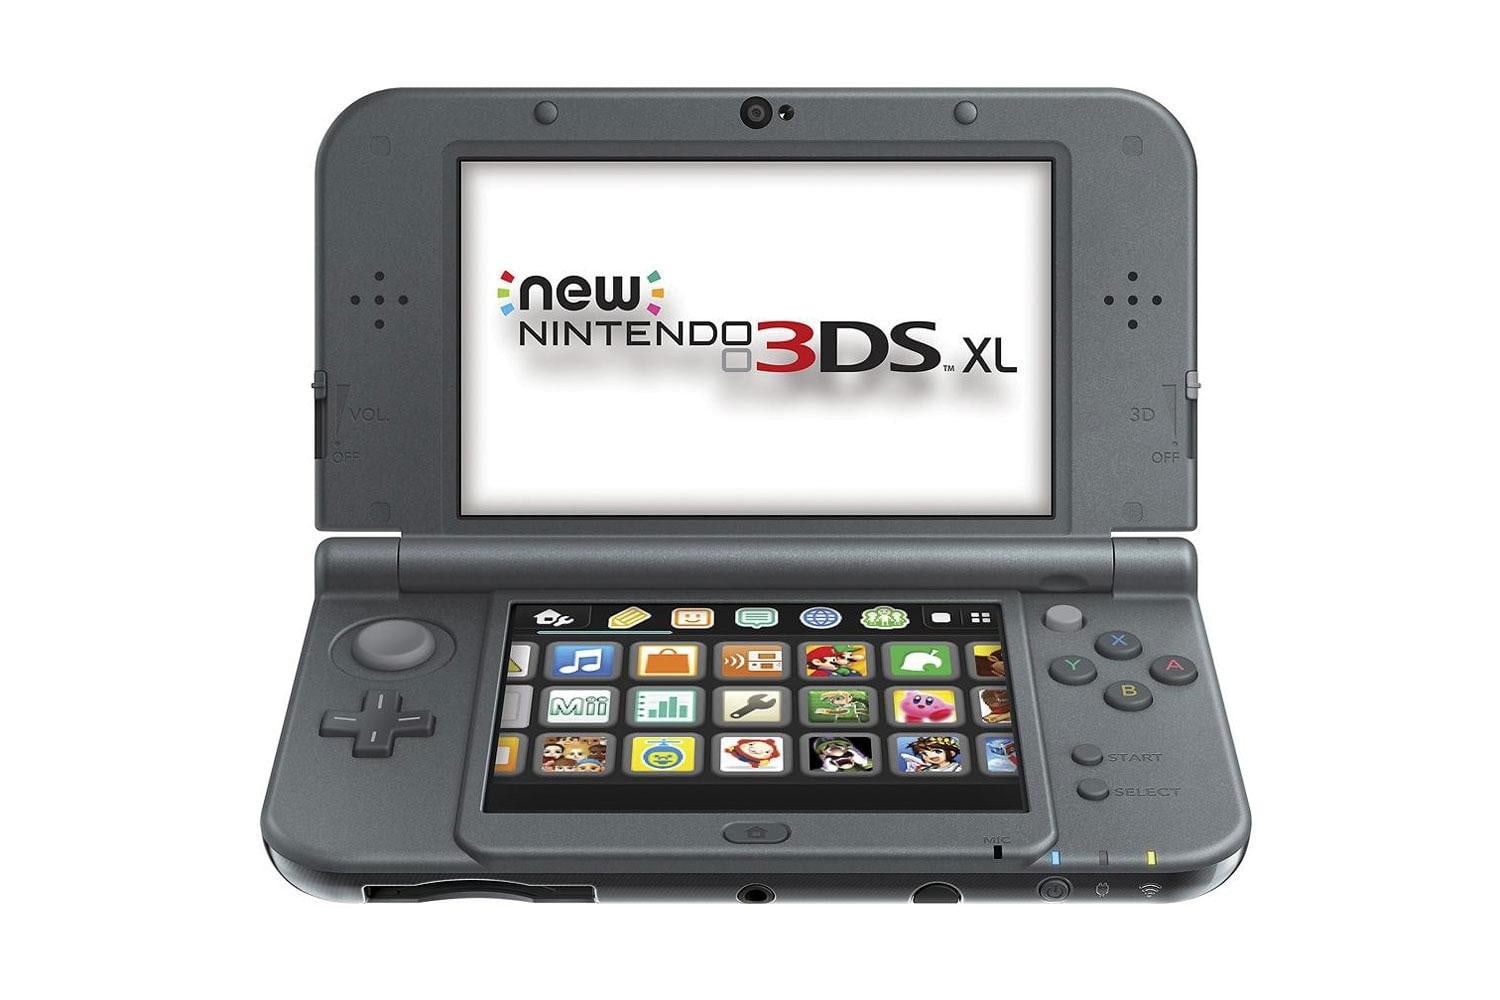 New-Nintendo-3DS-XL-press-image